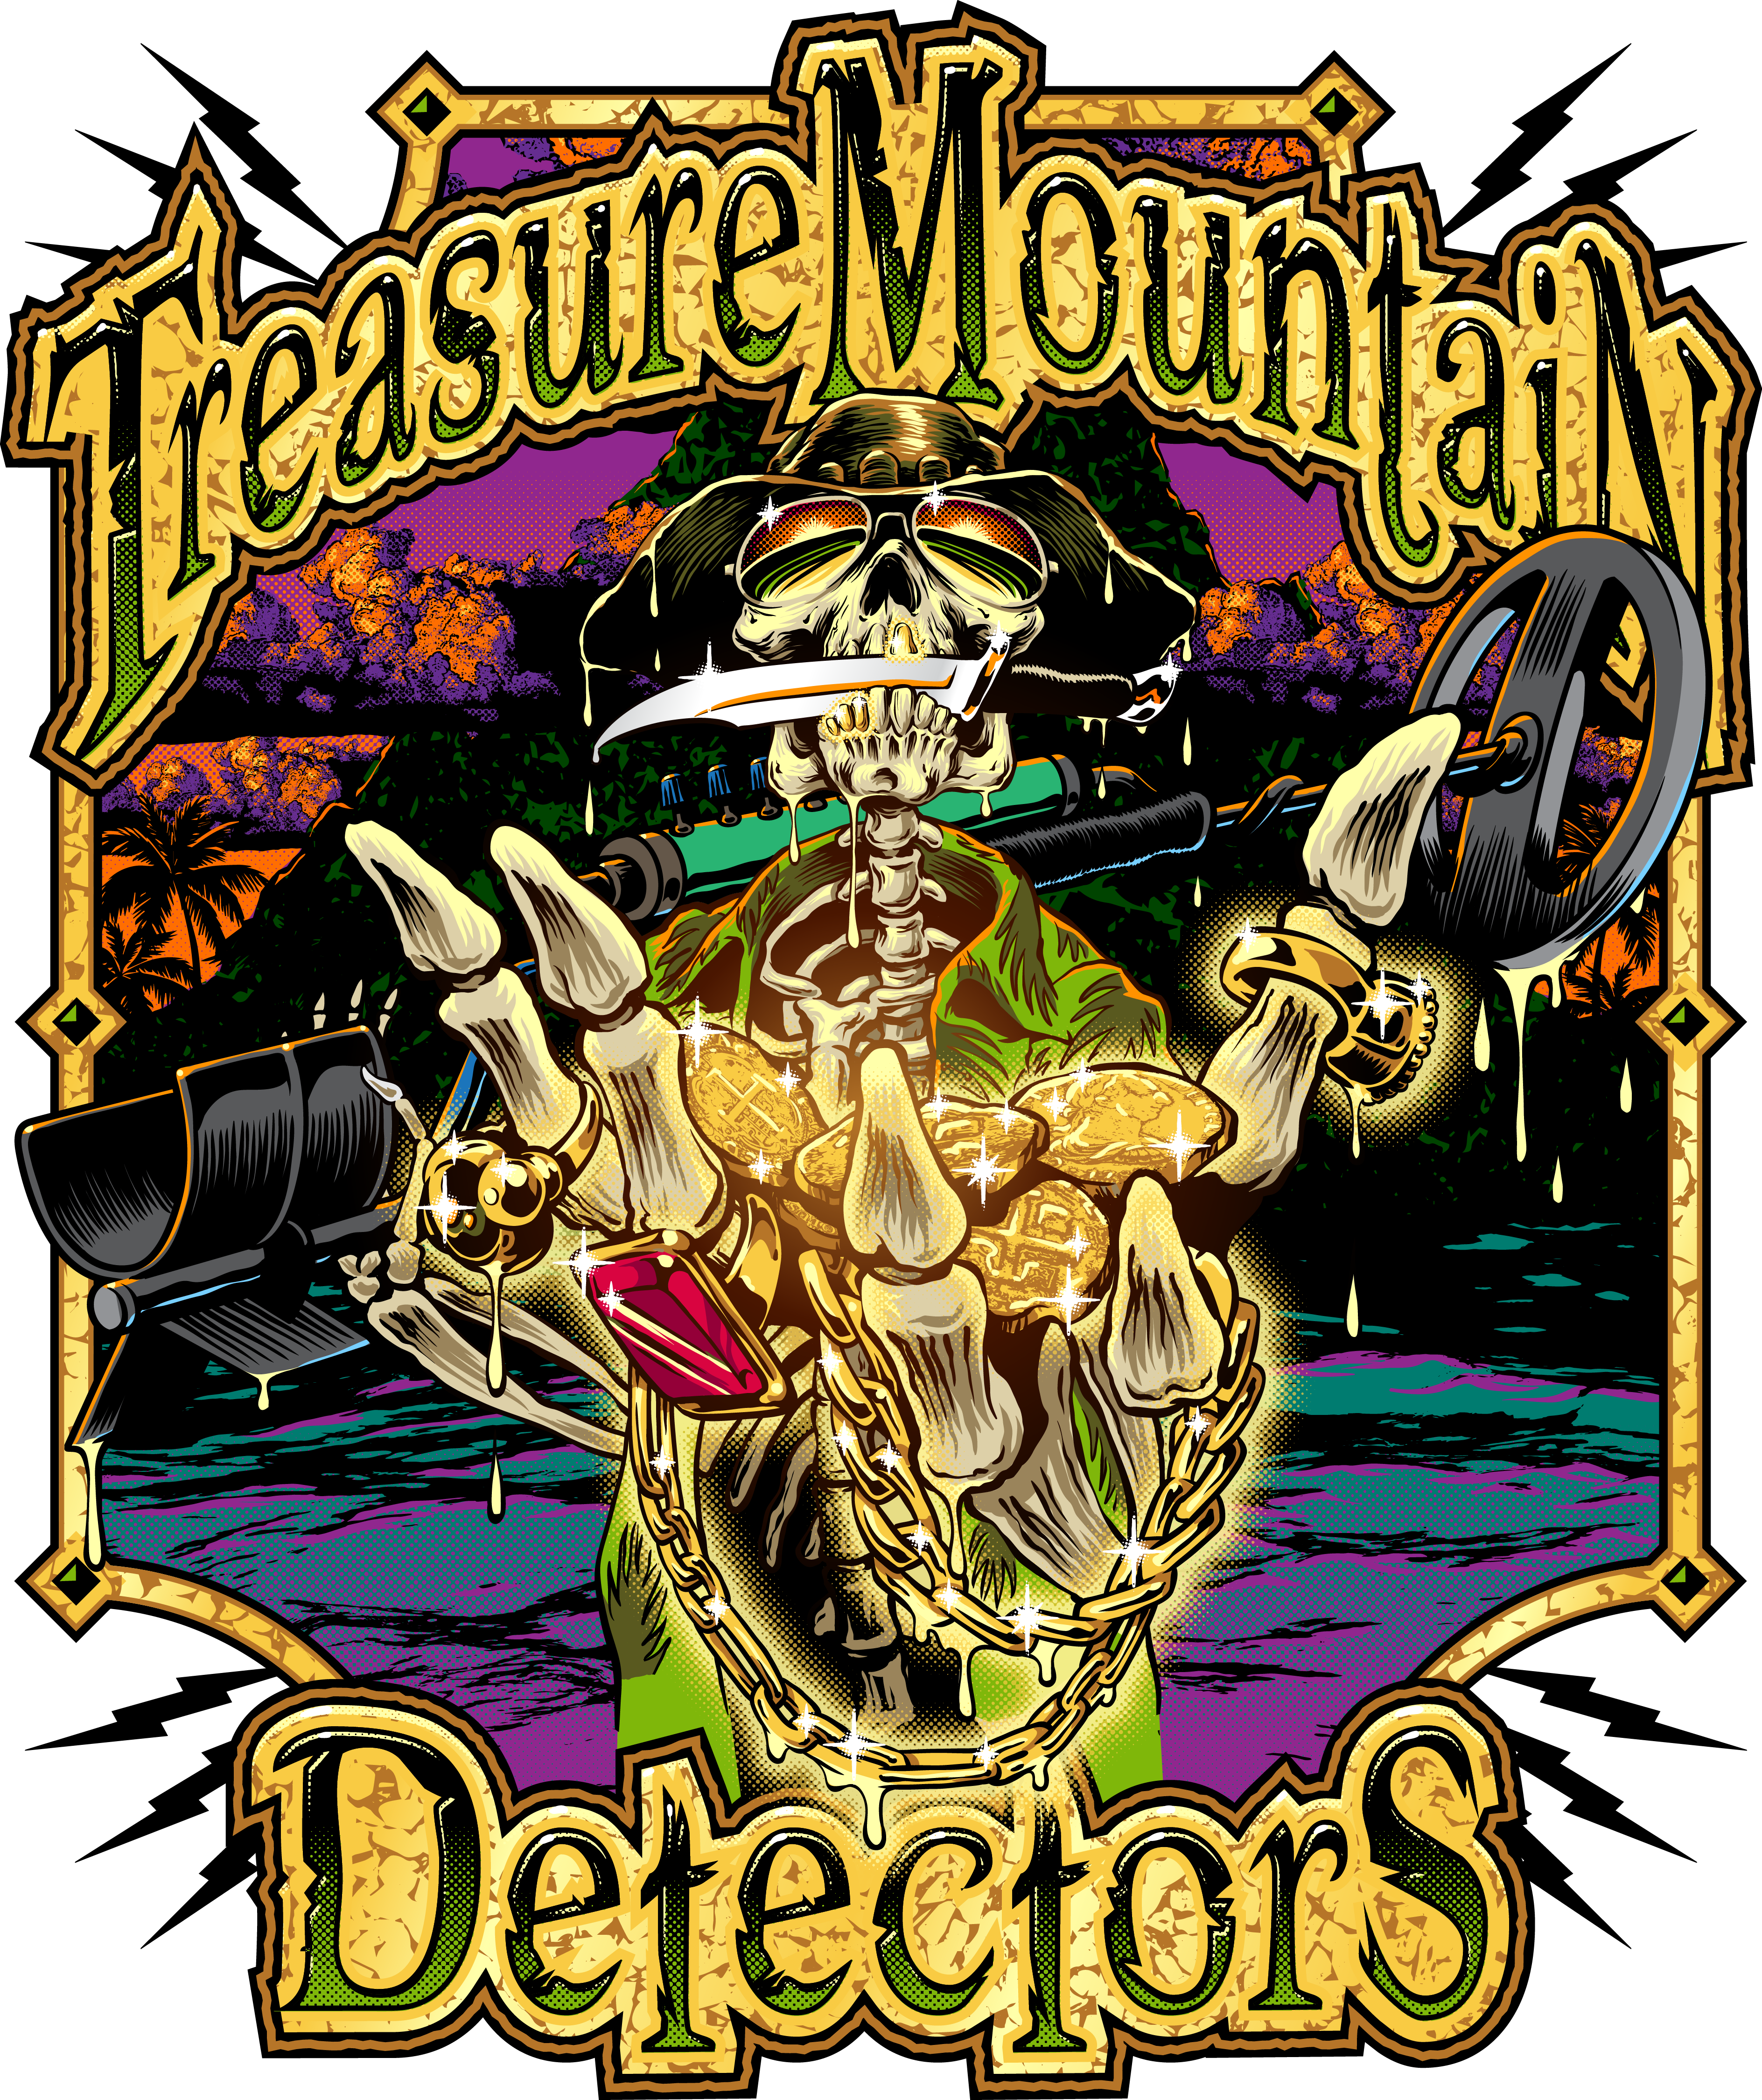 Treasure Mountain Detectors